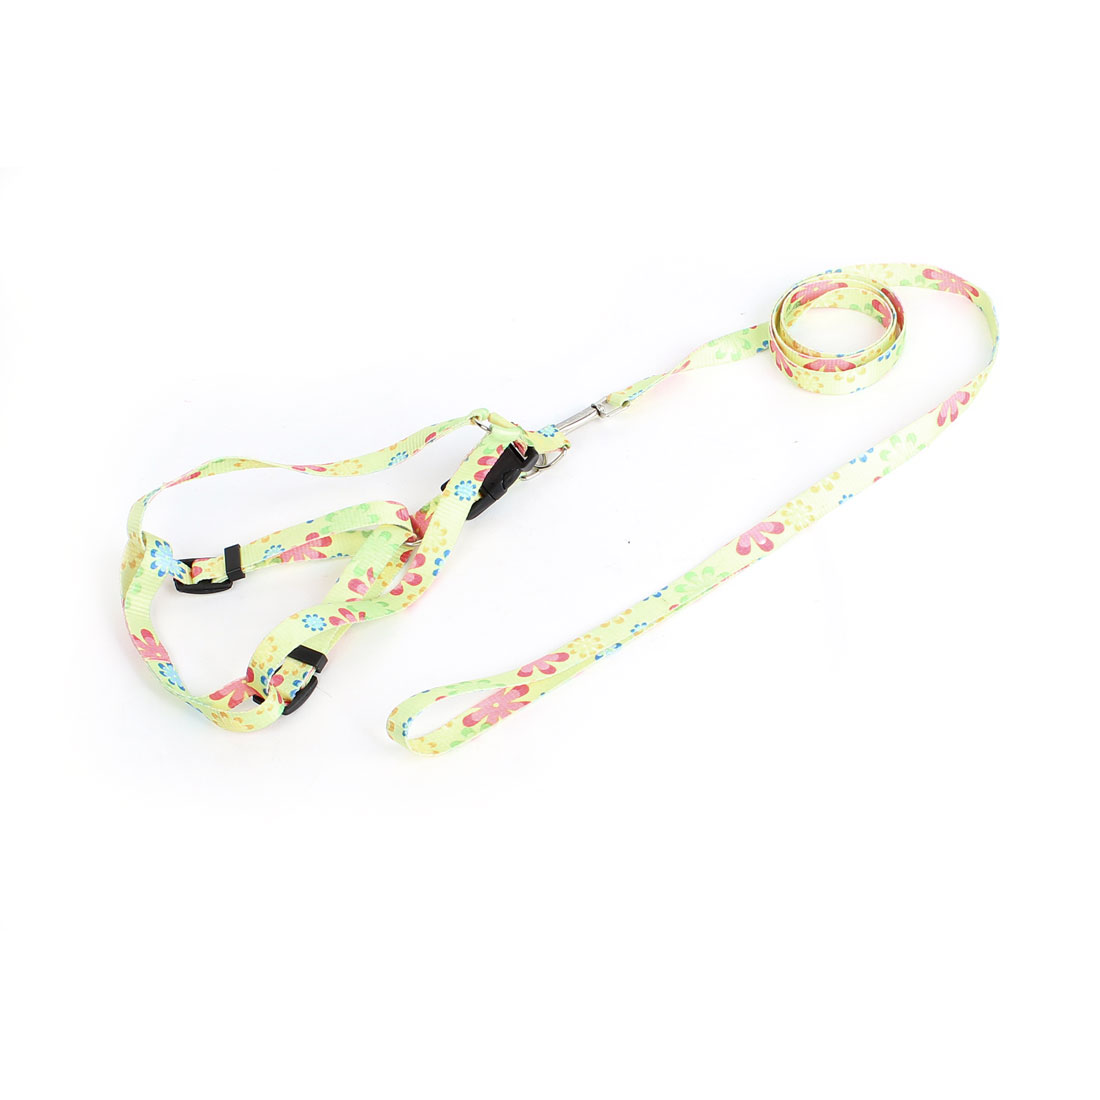 Trigger Hook Release Buckle Flower Pattern Pet Dog Pug Yorkie Harness Halter Leash Assorted Color